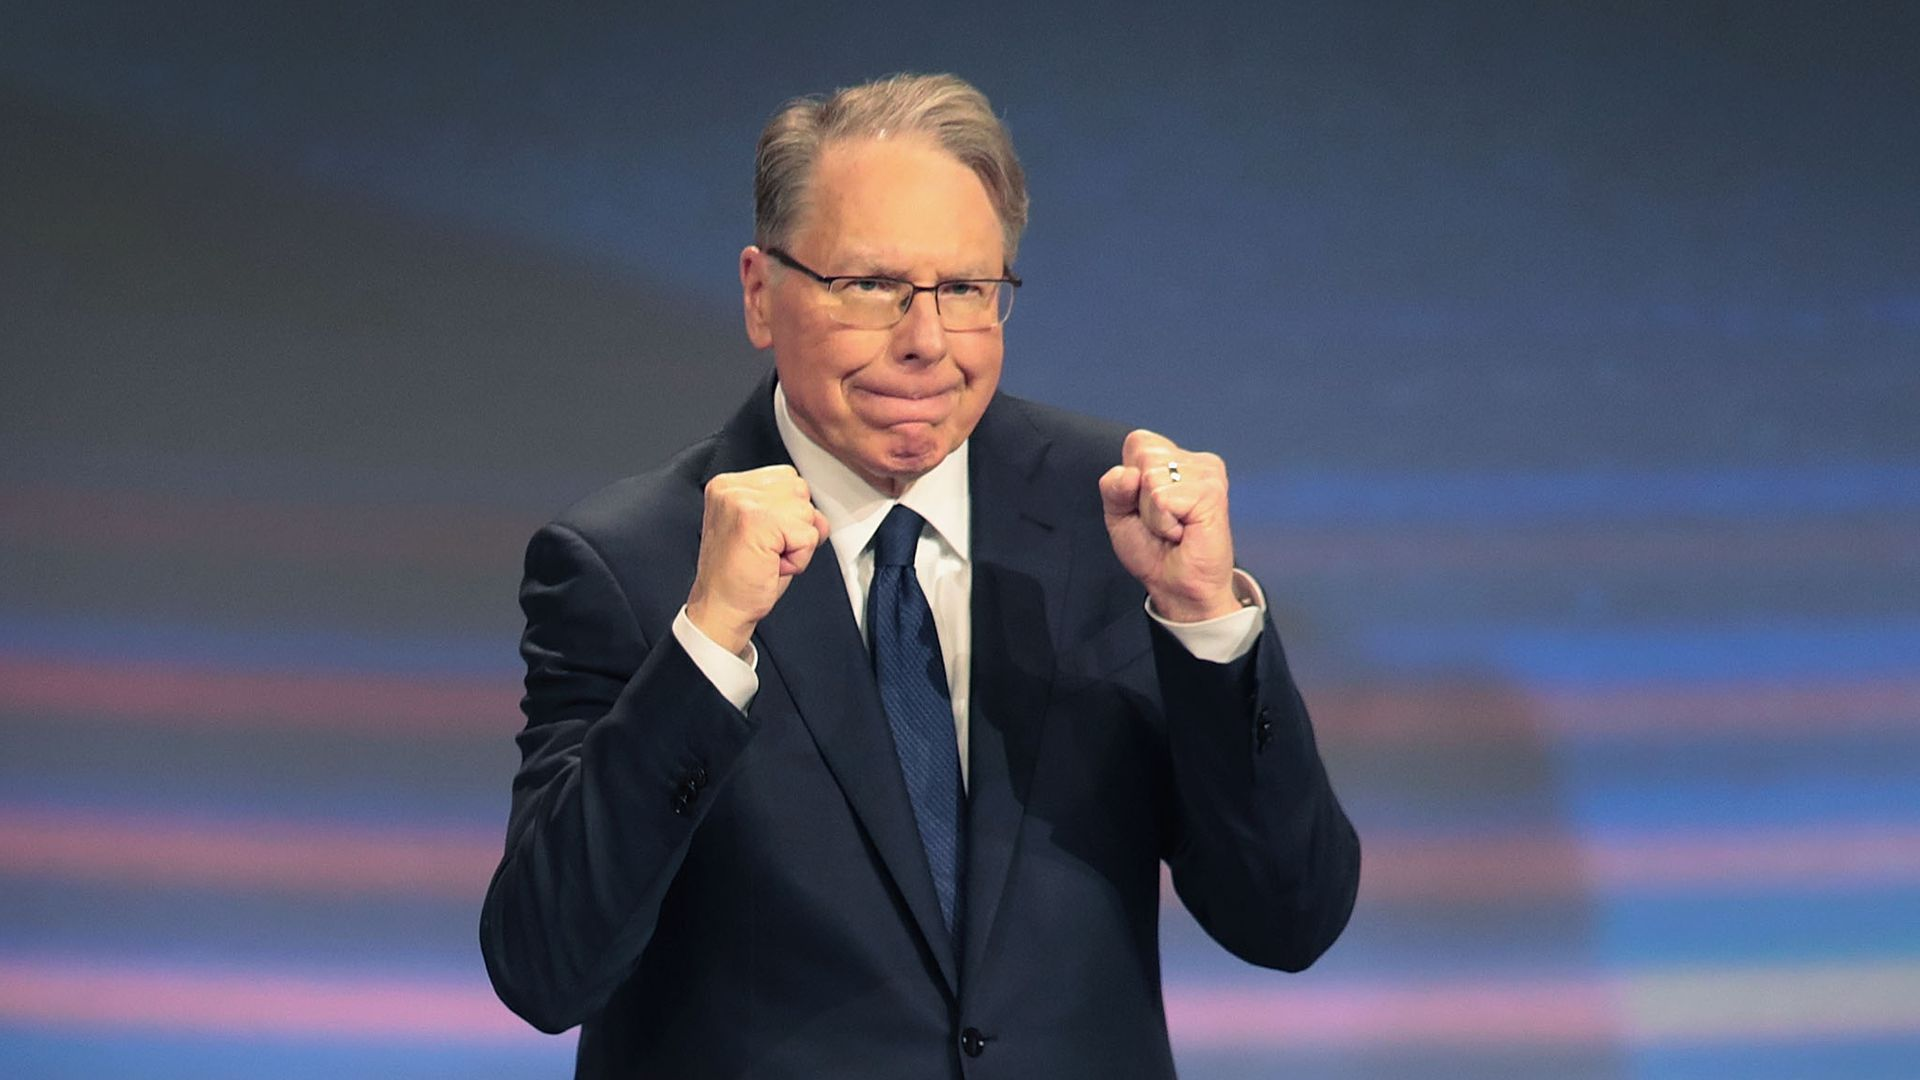 The National Rifle Association re-elected longtime CEO Wayne LaPierre to his leadership position on Monday.